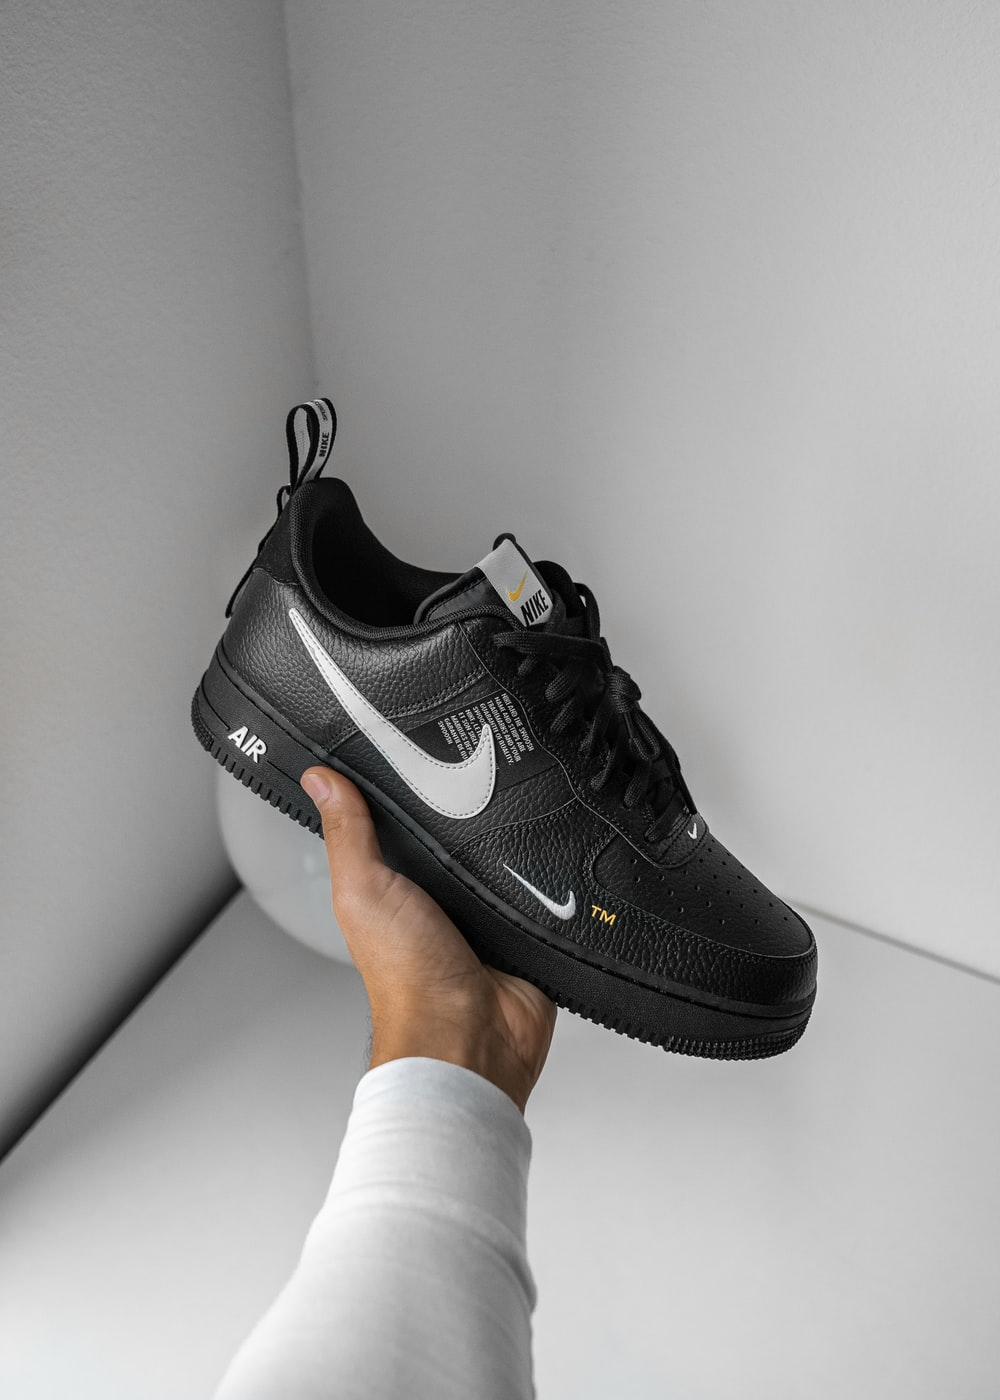 black and white Nike Air Force 1 sneaker